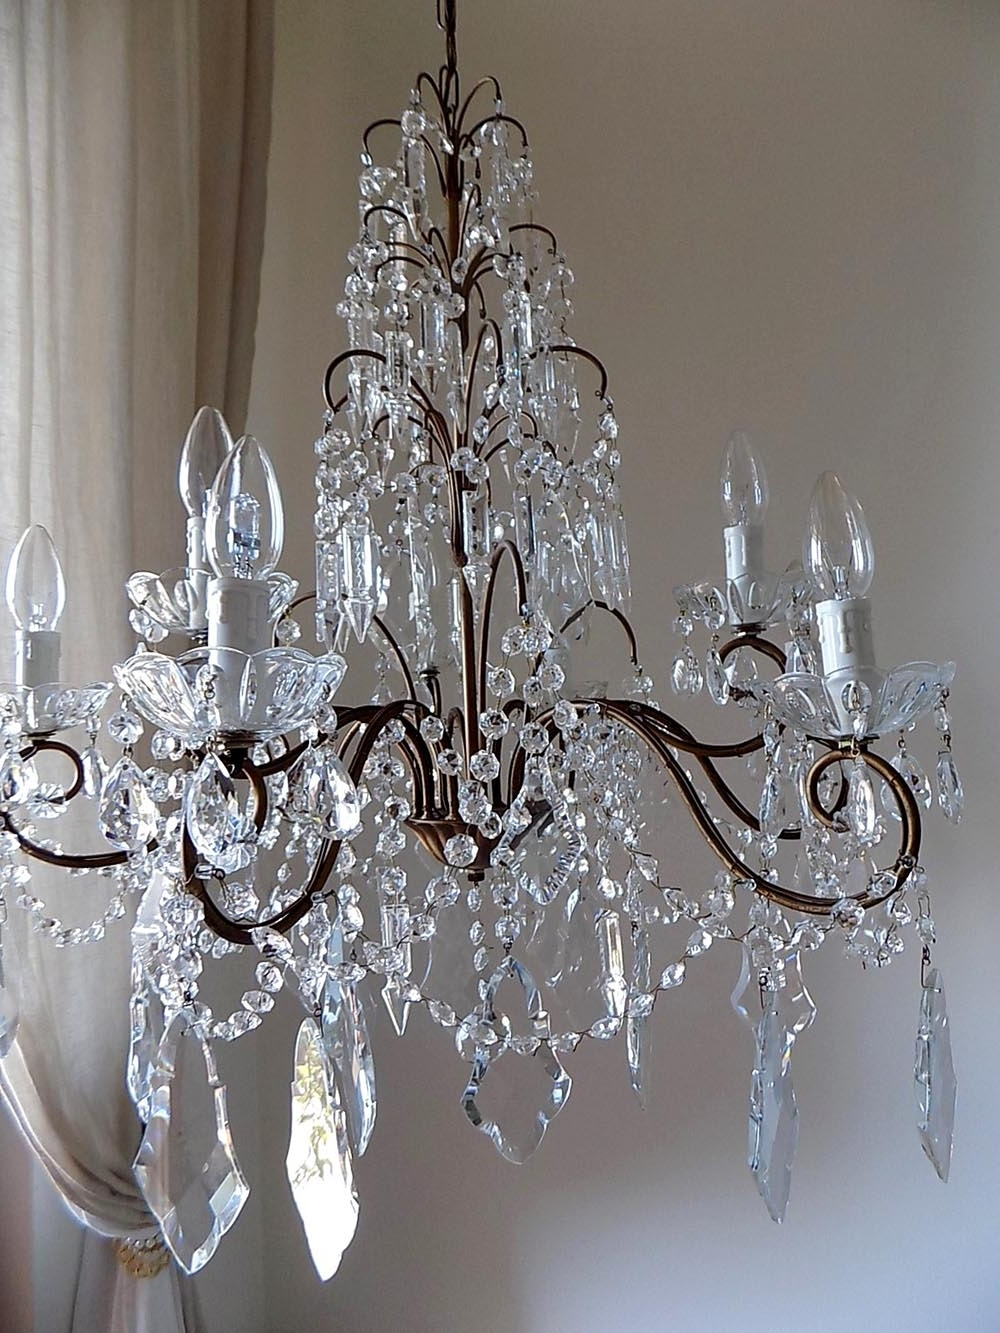 Crystal And Brass Chandelier In Popular Italian Vintage 9 Arms Chandelier With Rare Shaped Crystals (View 6 of 20)